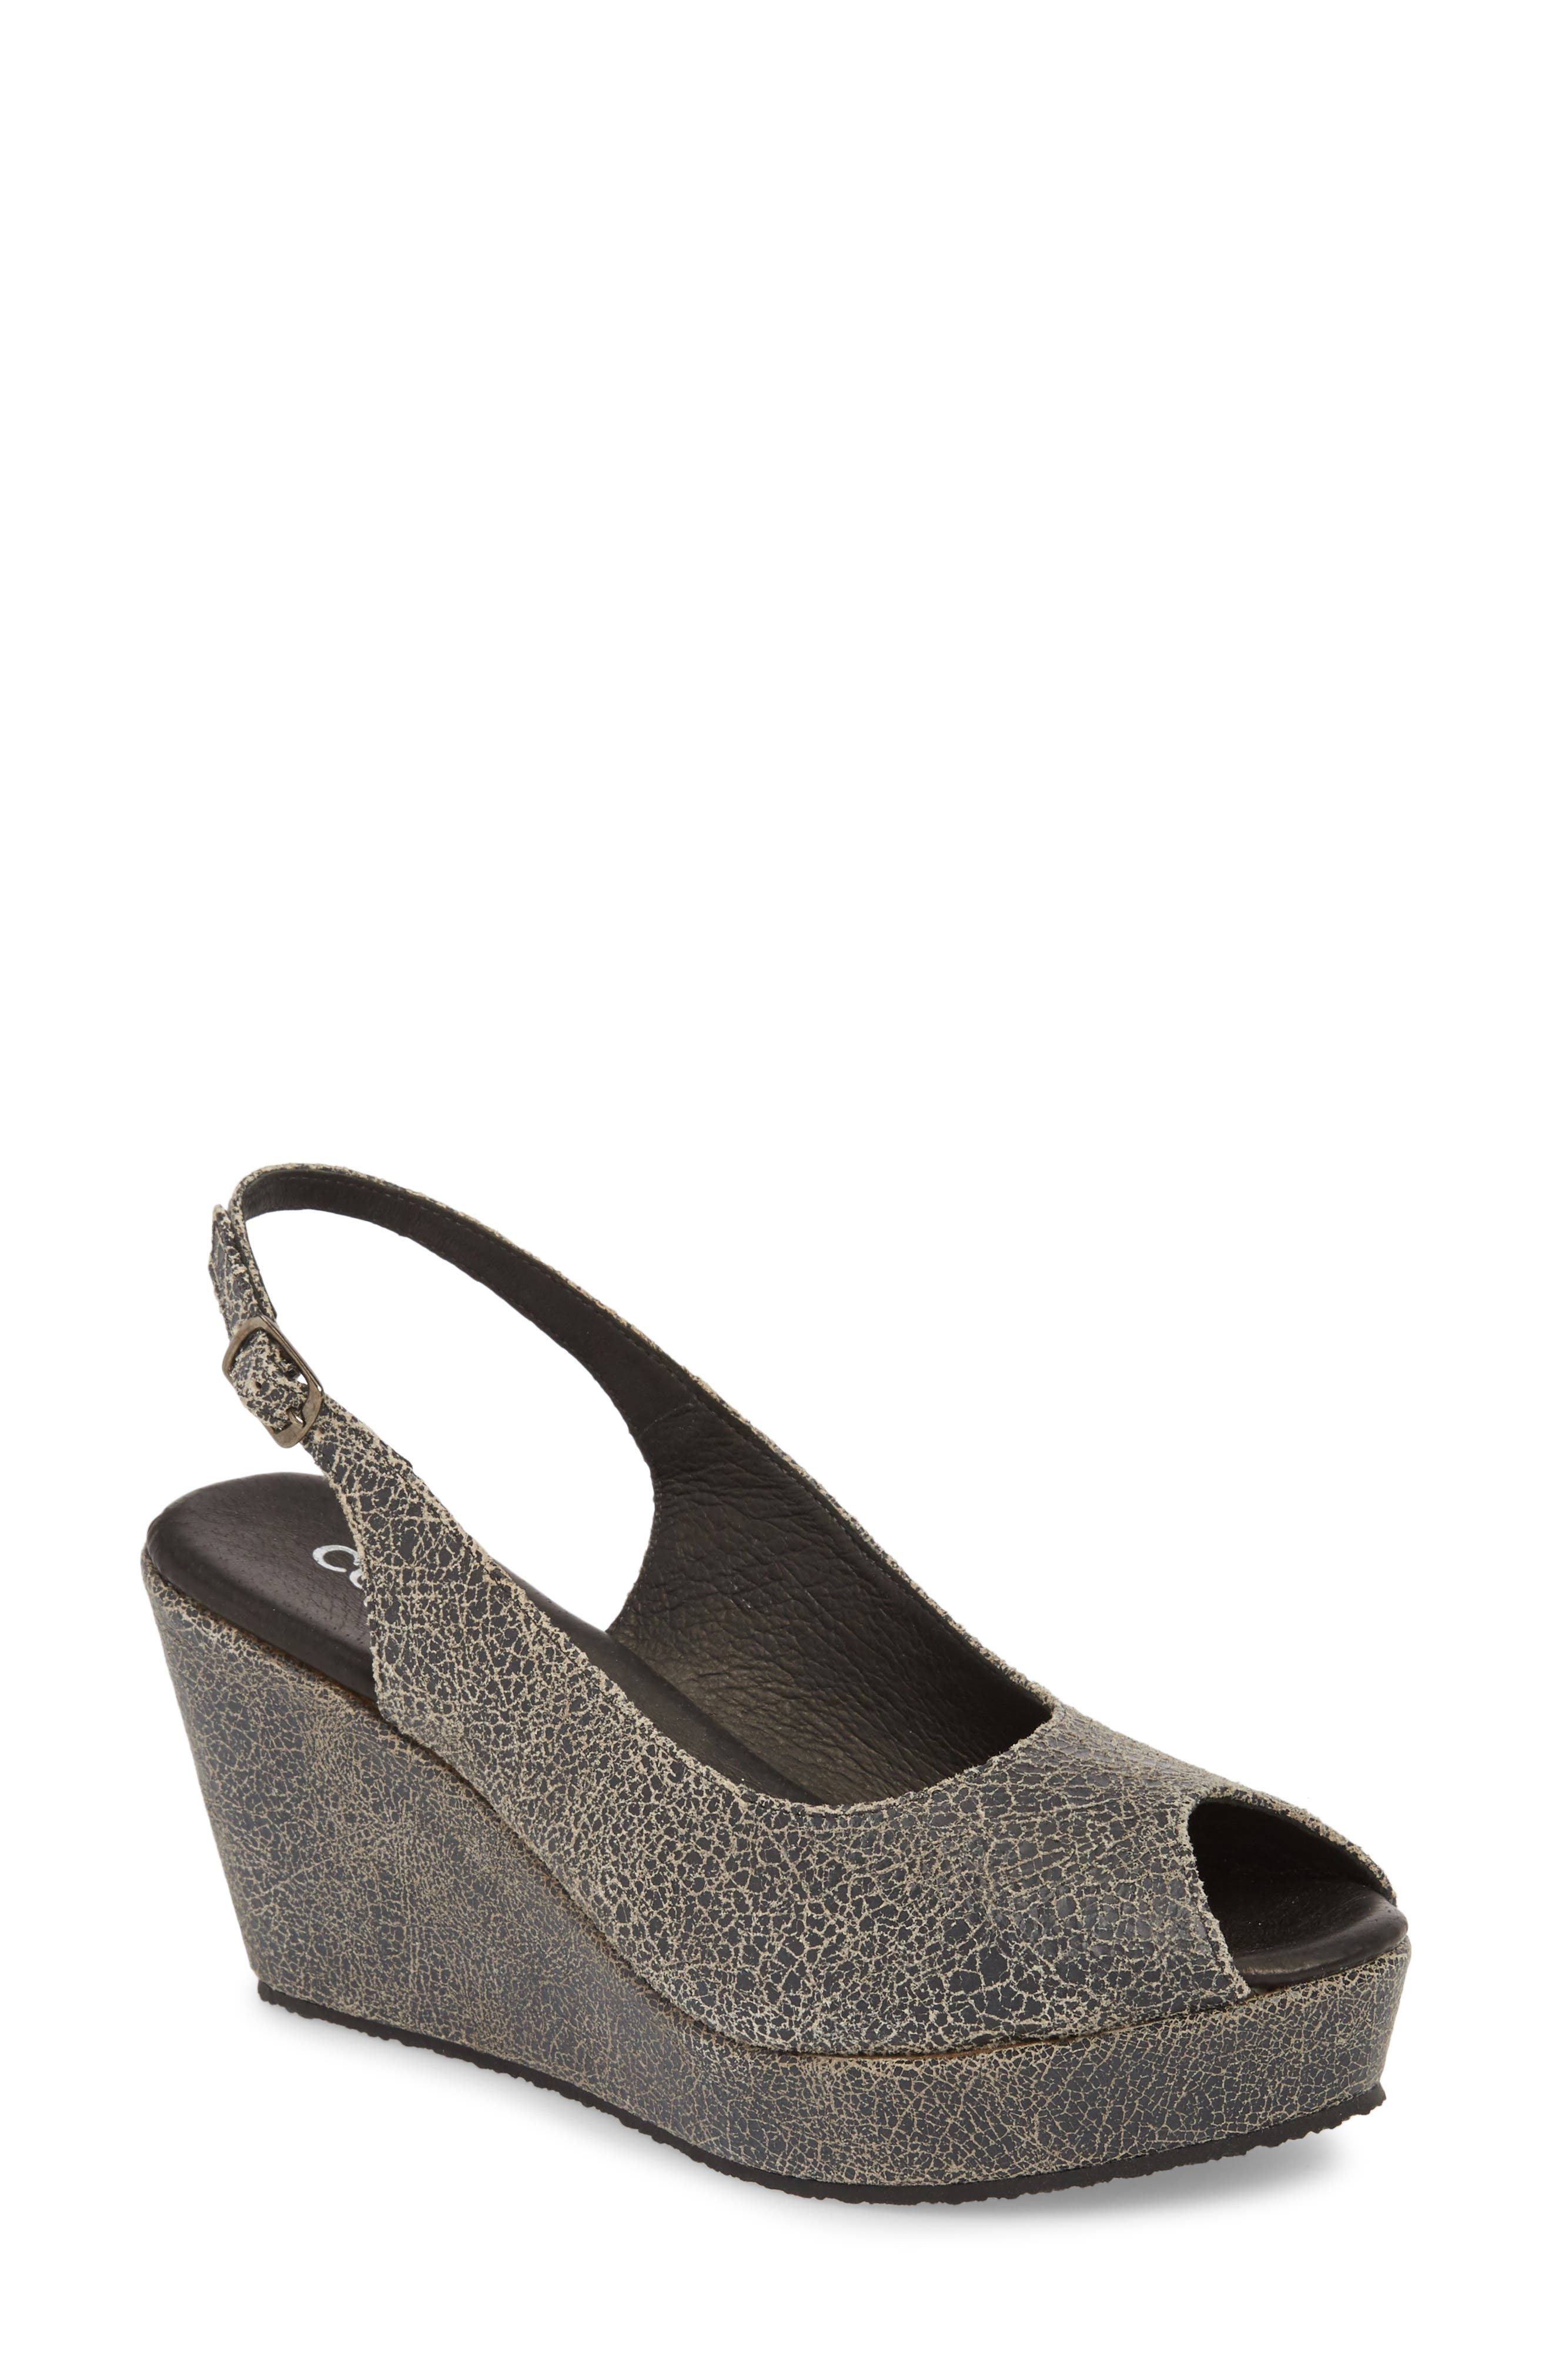 Fabrice Slingback Platform Sandal,                             Main thumbnail 1, color,                             GREY CRACKLE LEATHER